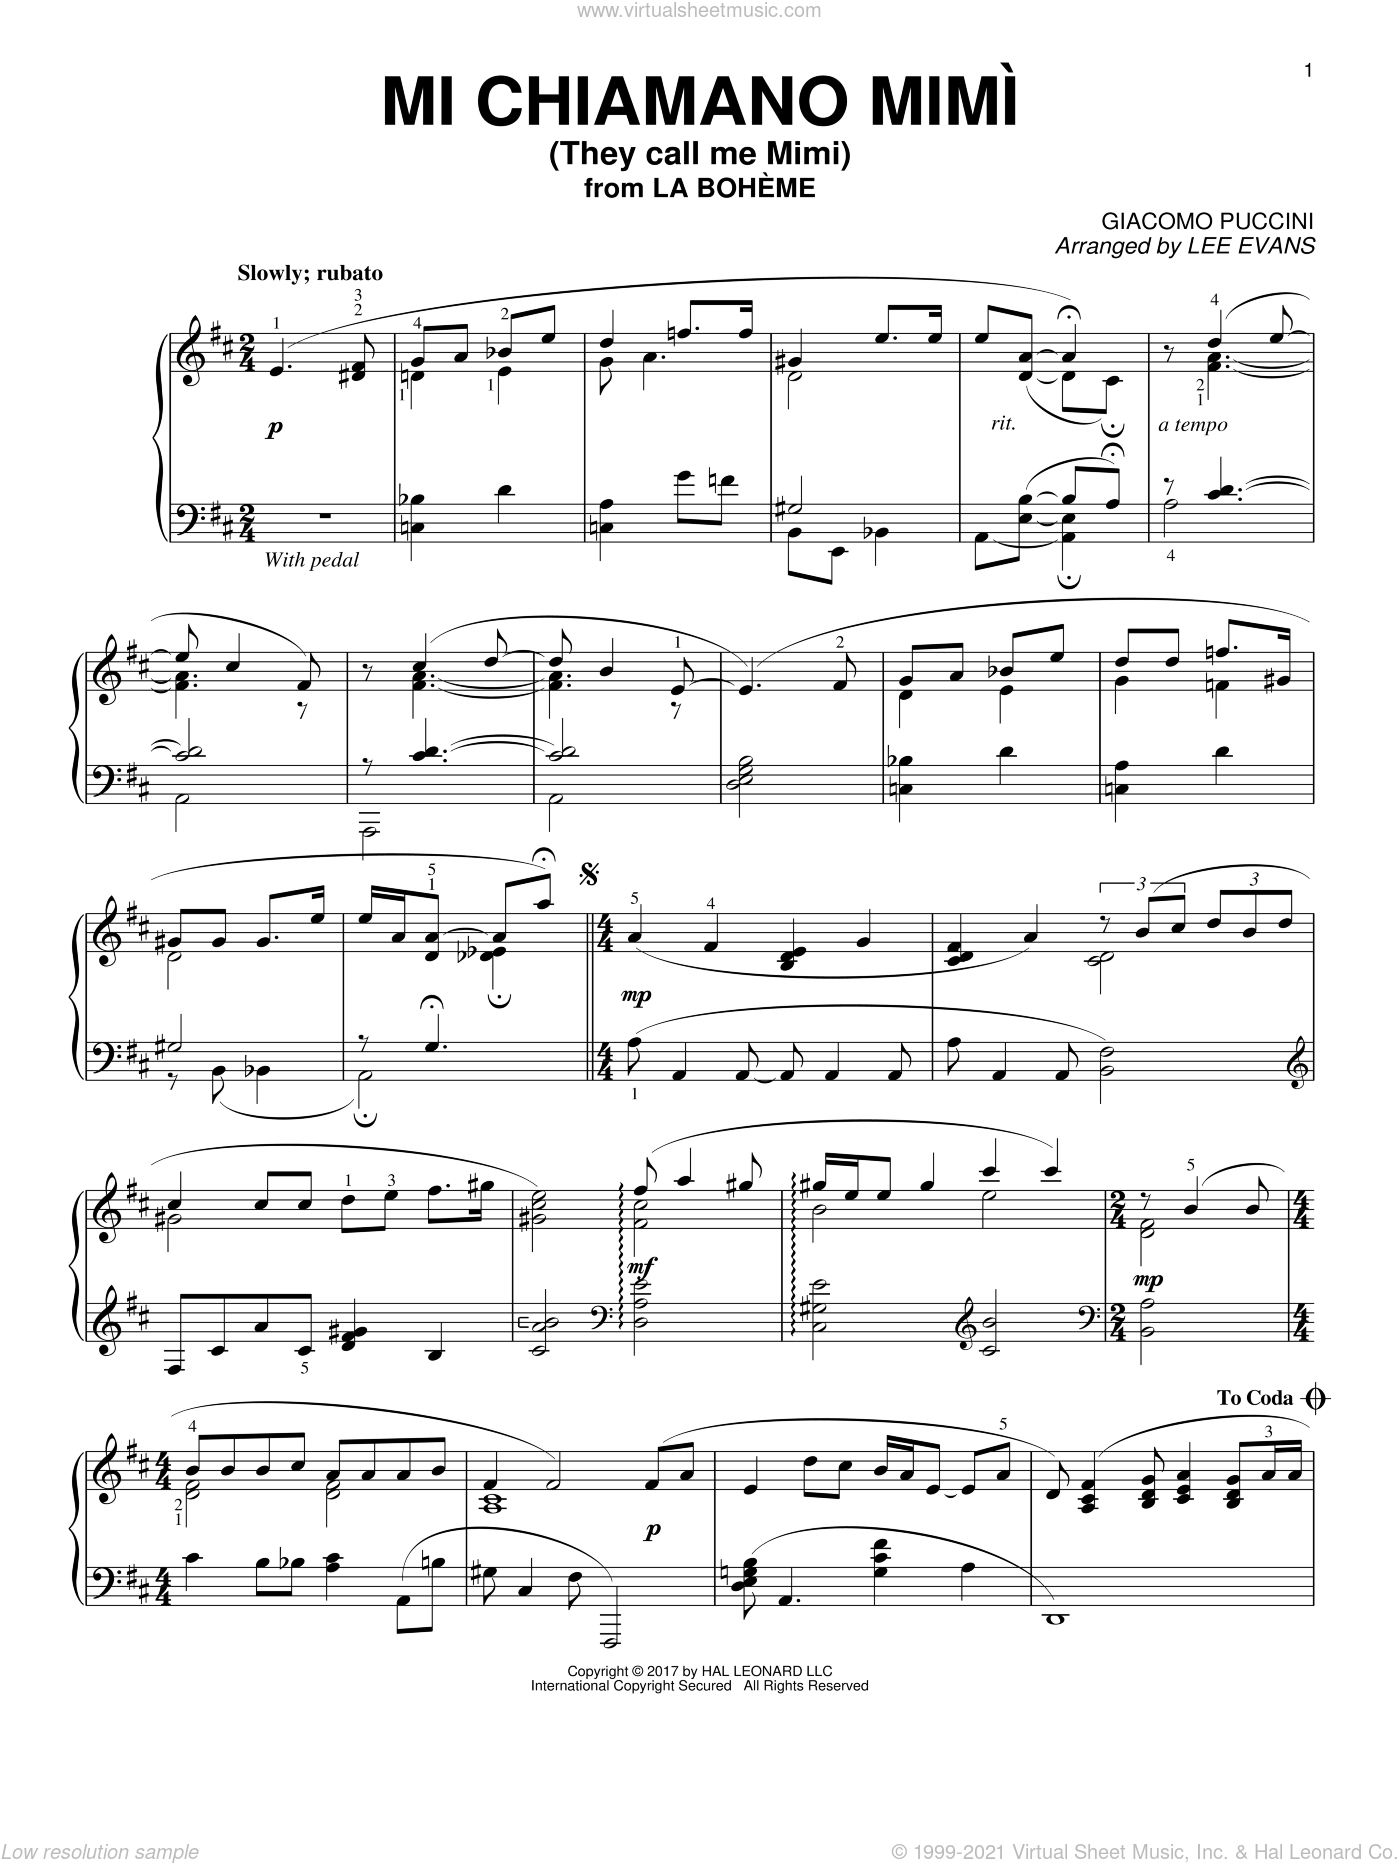 Me Chiamano Mimi sheet music for piano solo by Giacomo Puccini and Lee Evans, classical score, intermediate. Score Image Preview.